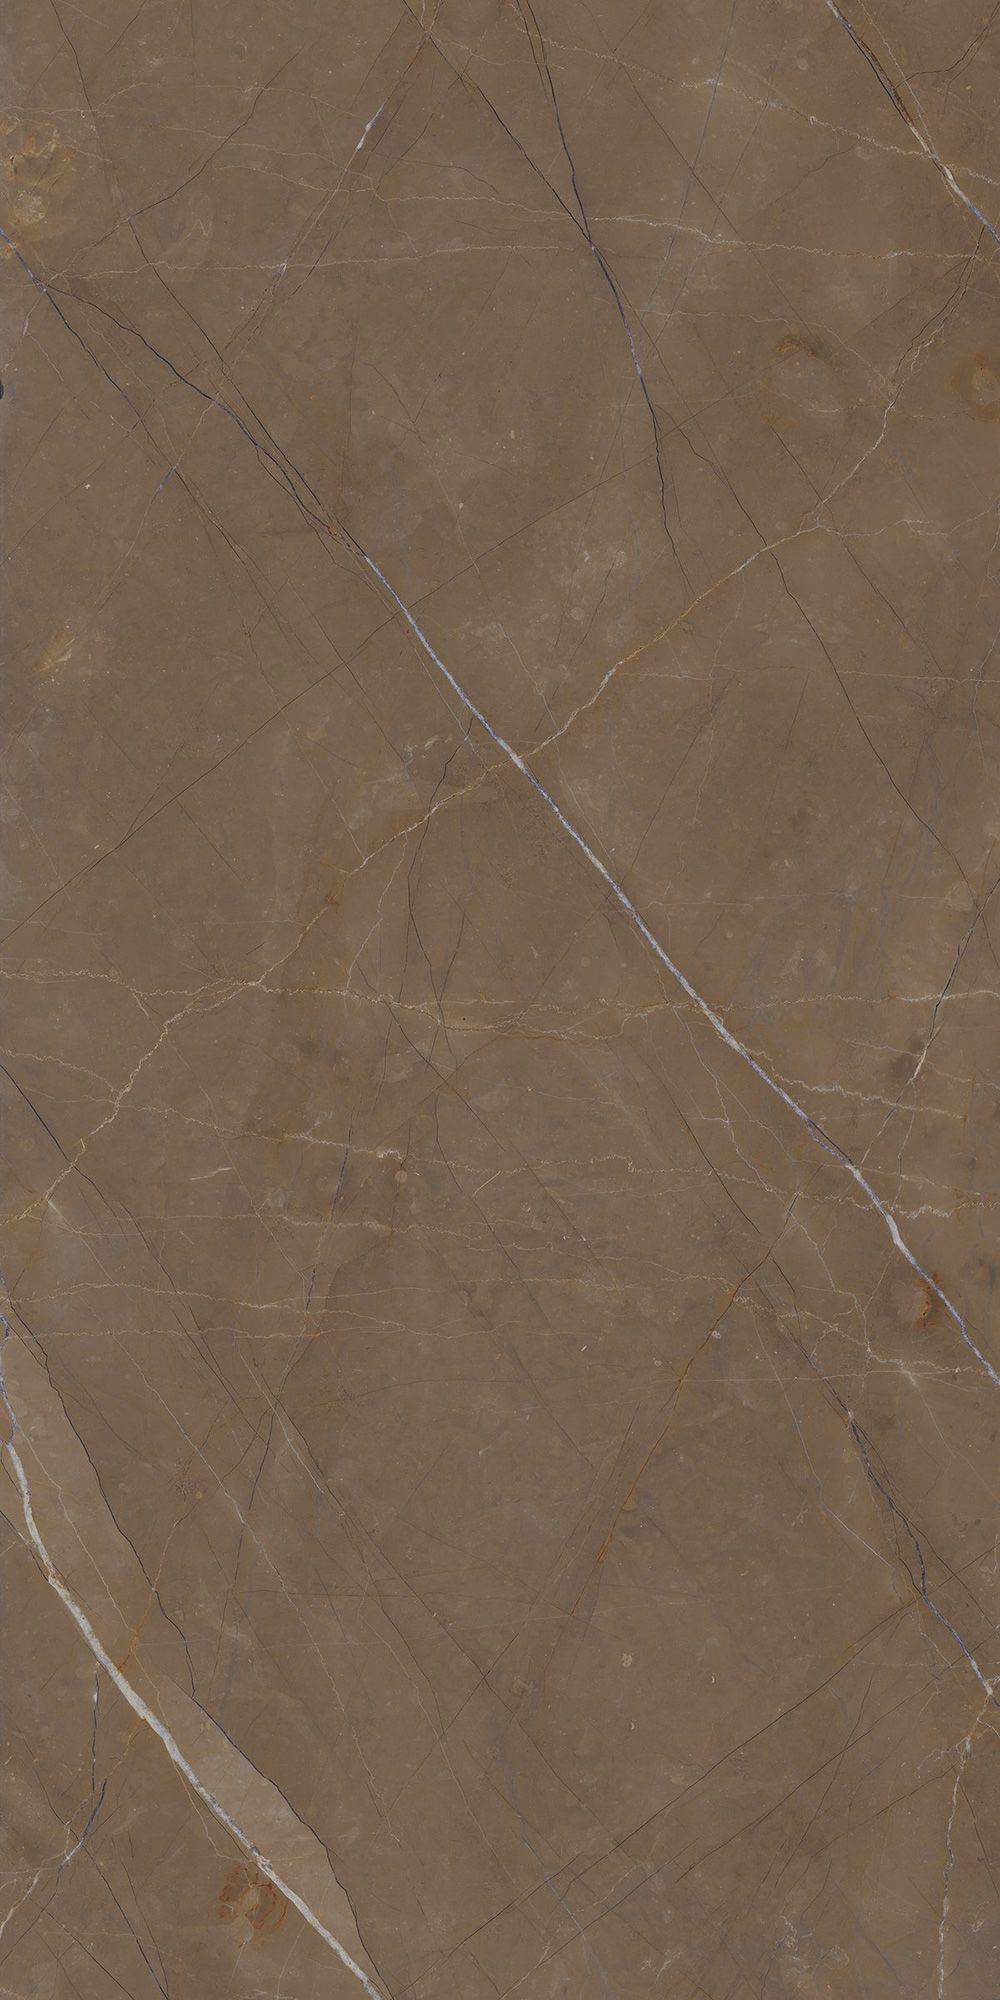 Glam bronze marble lab bronze marble effect porcelain tiles marble lab glam bronze dailygadgetfo Choice Image